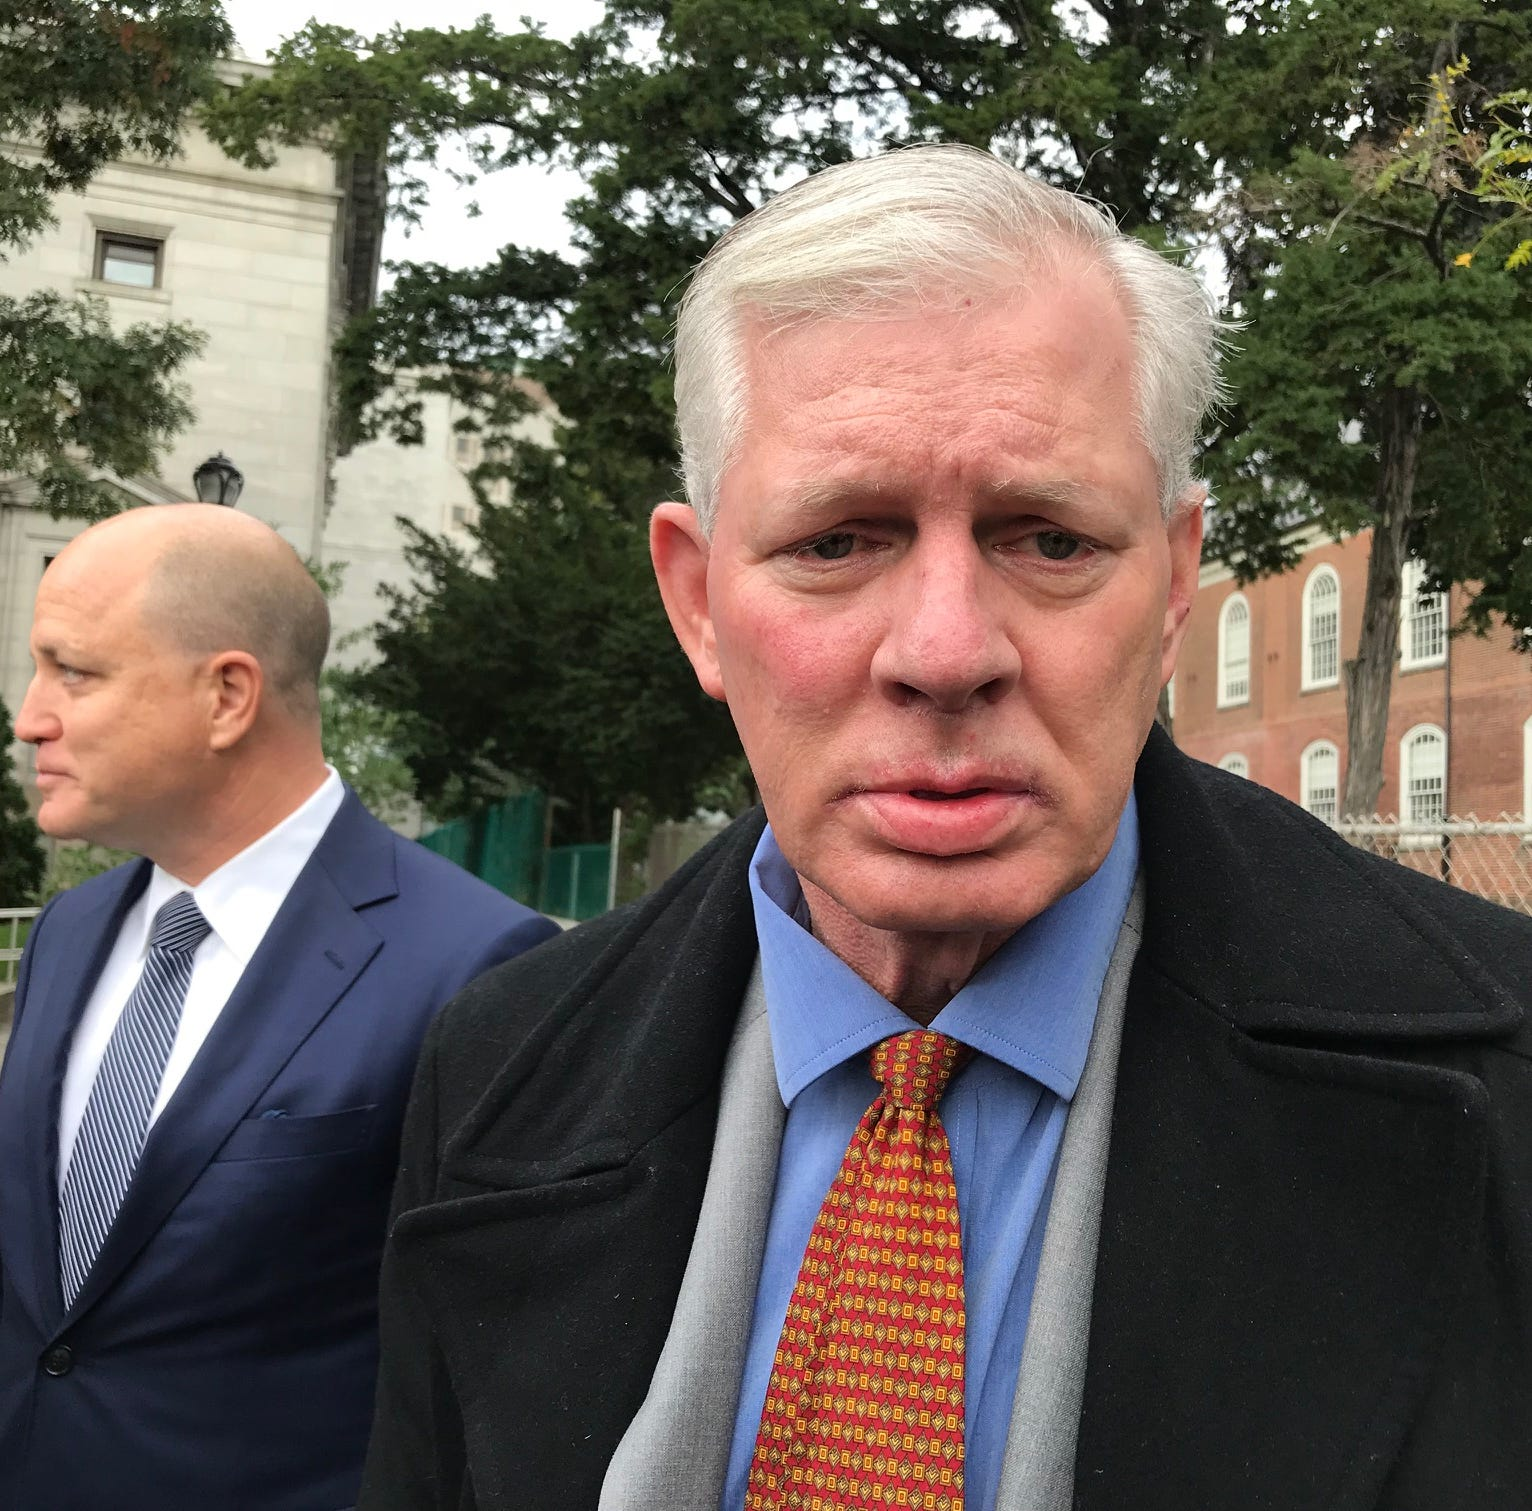 Former MLB star Lenny Dykstra's Linden housing issues still unresolved